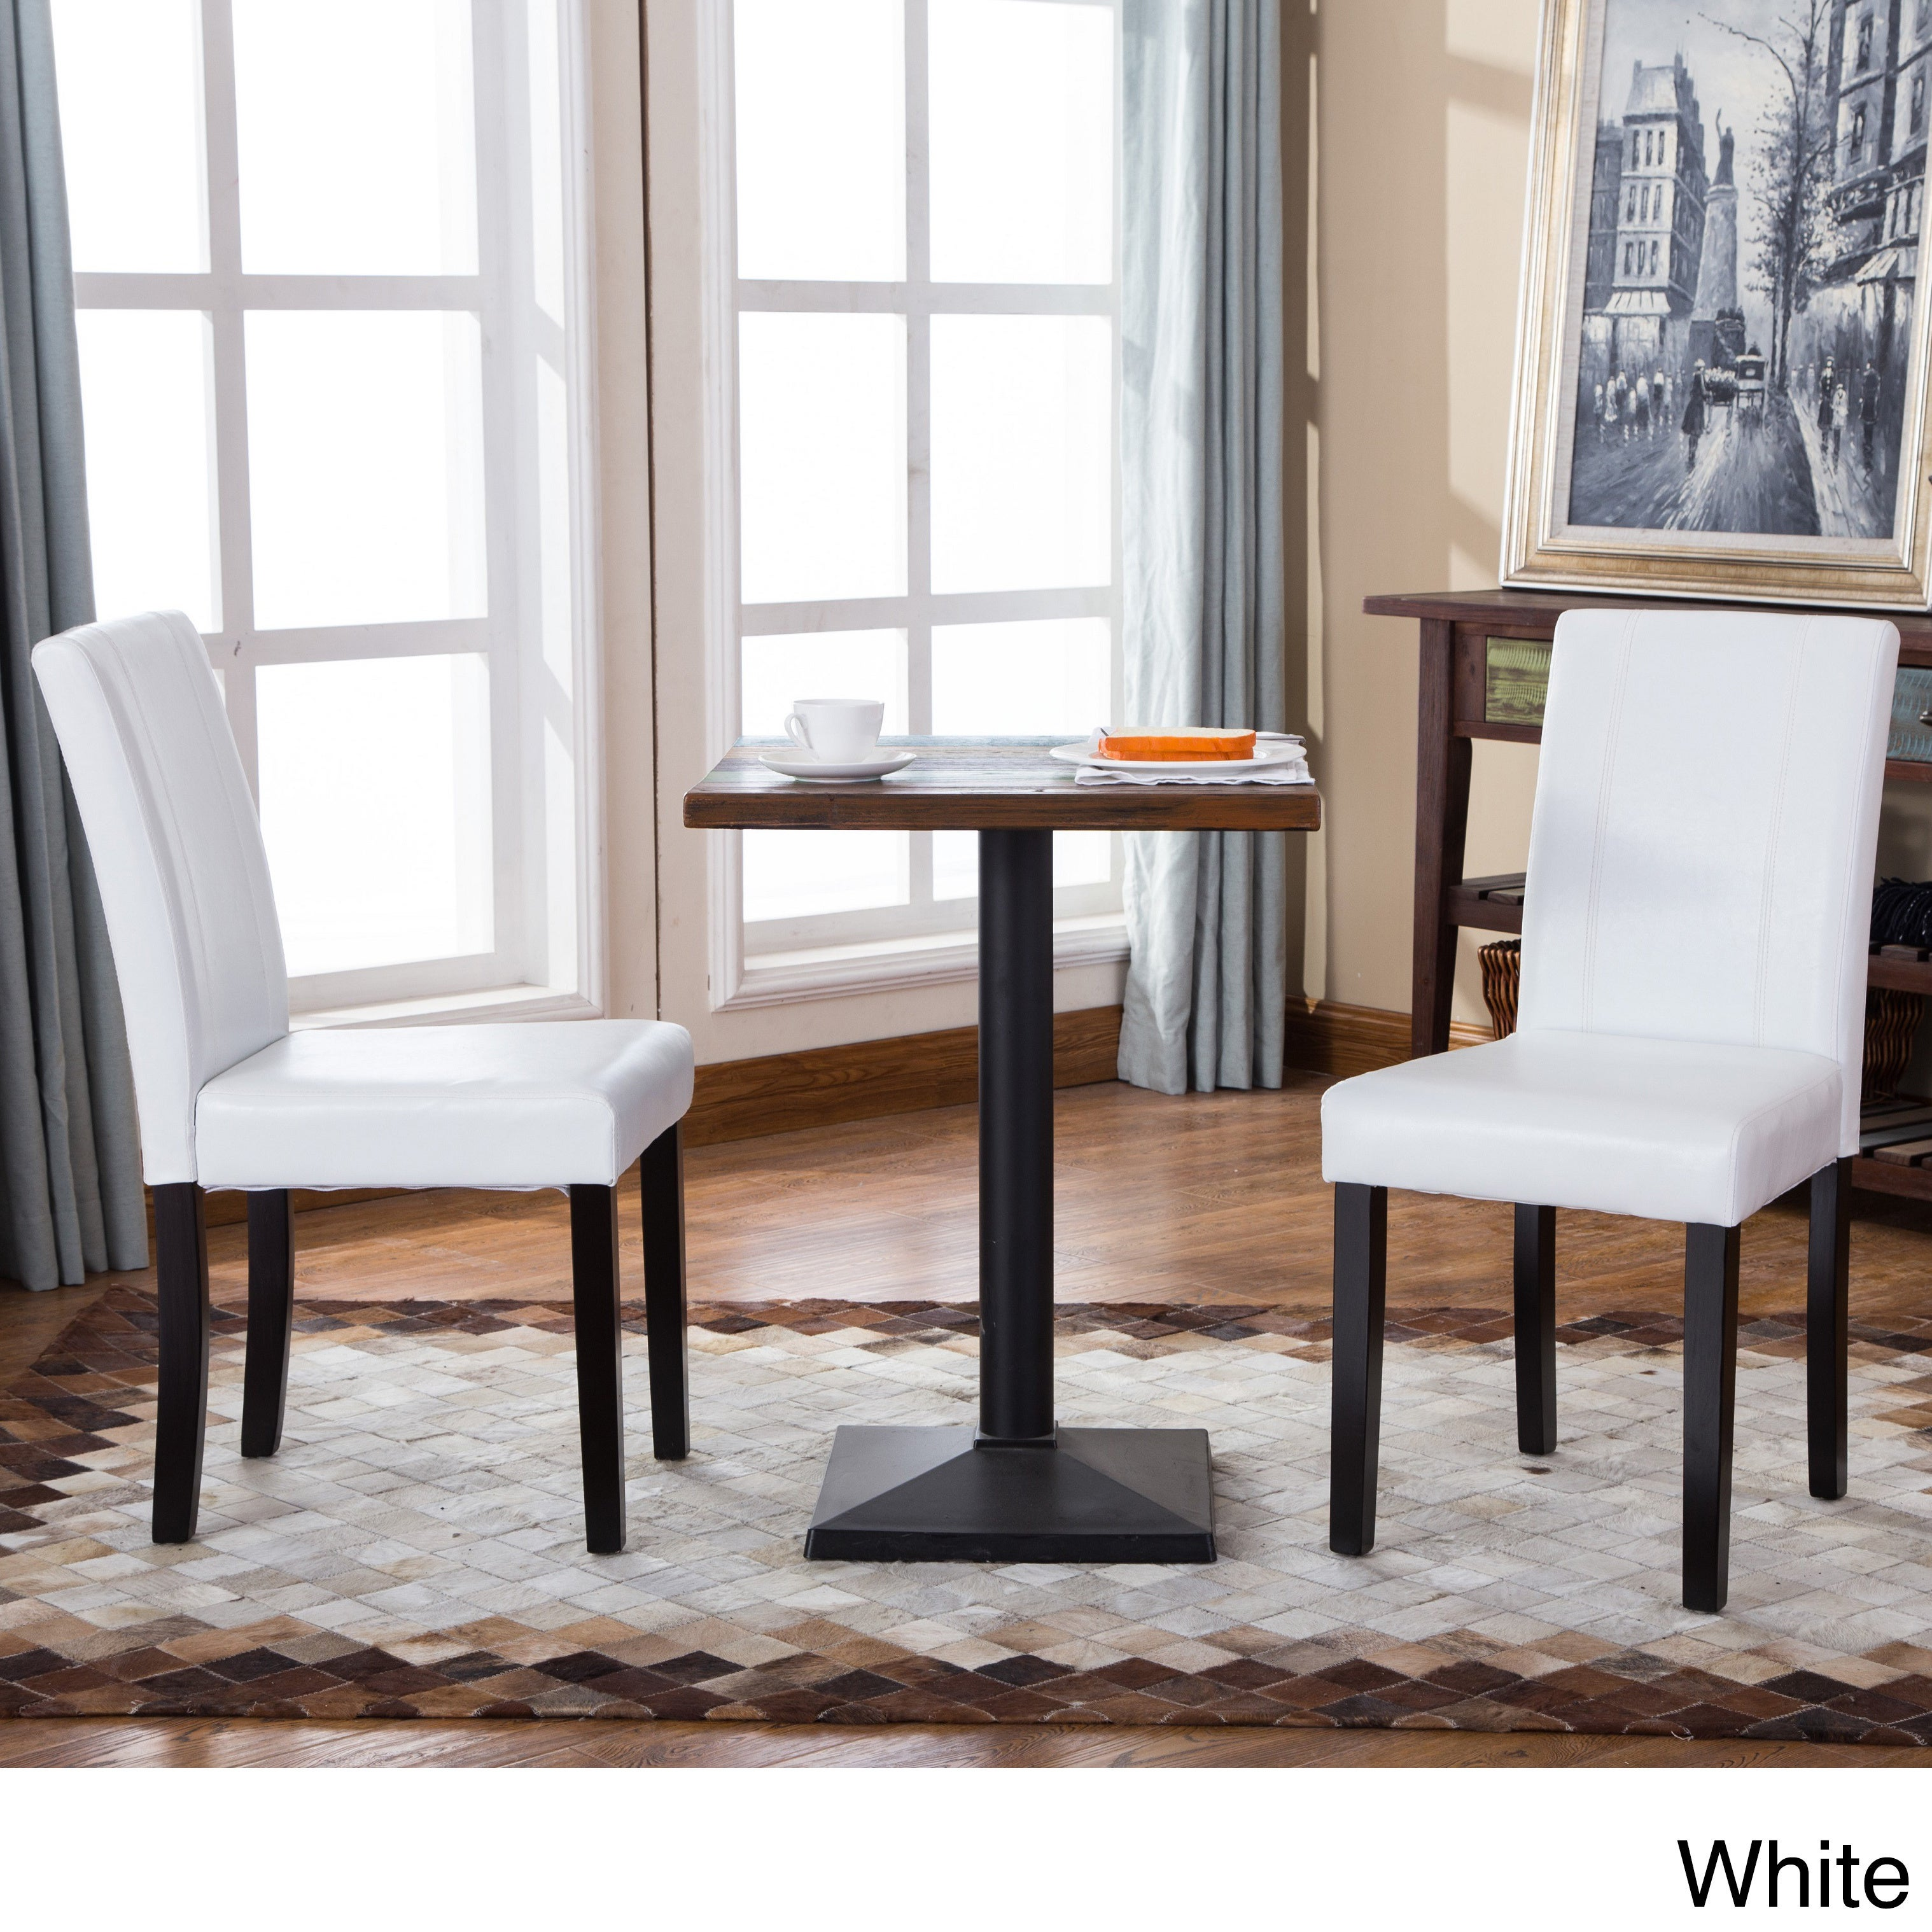 White Wood Kitchen Dining Room Chairs For Less